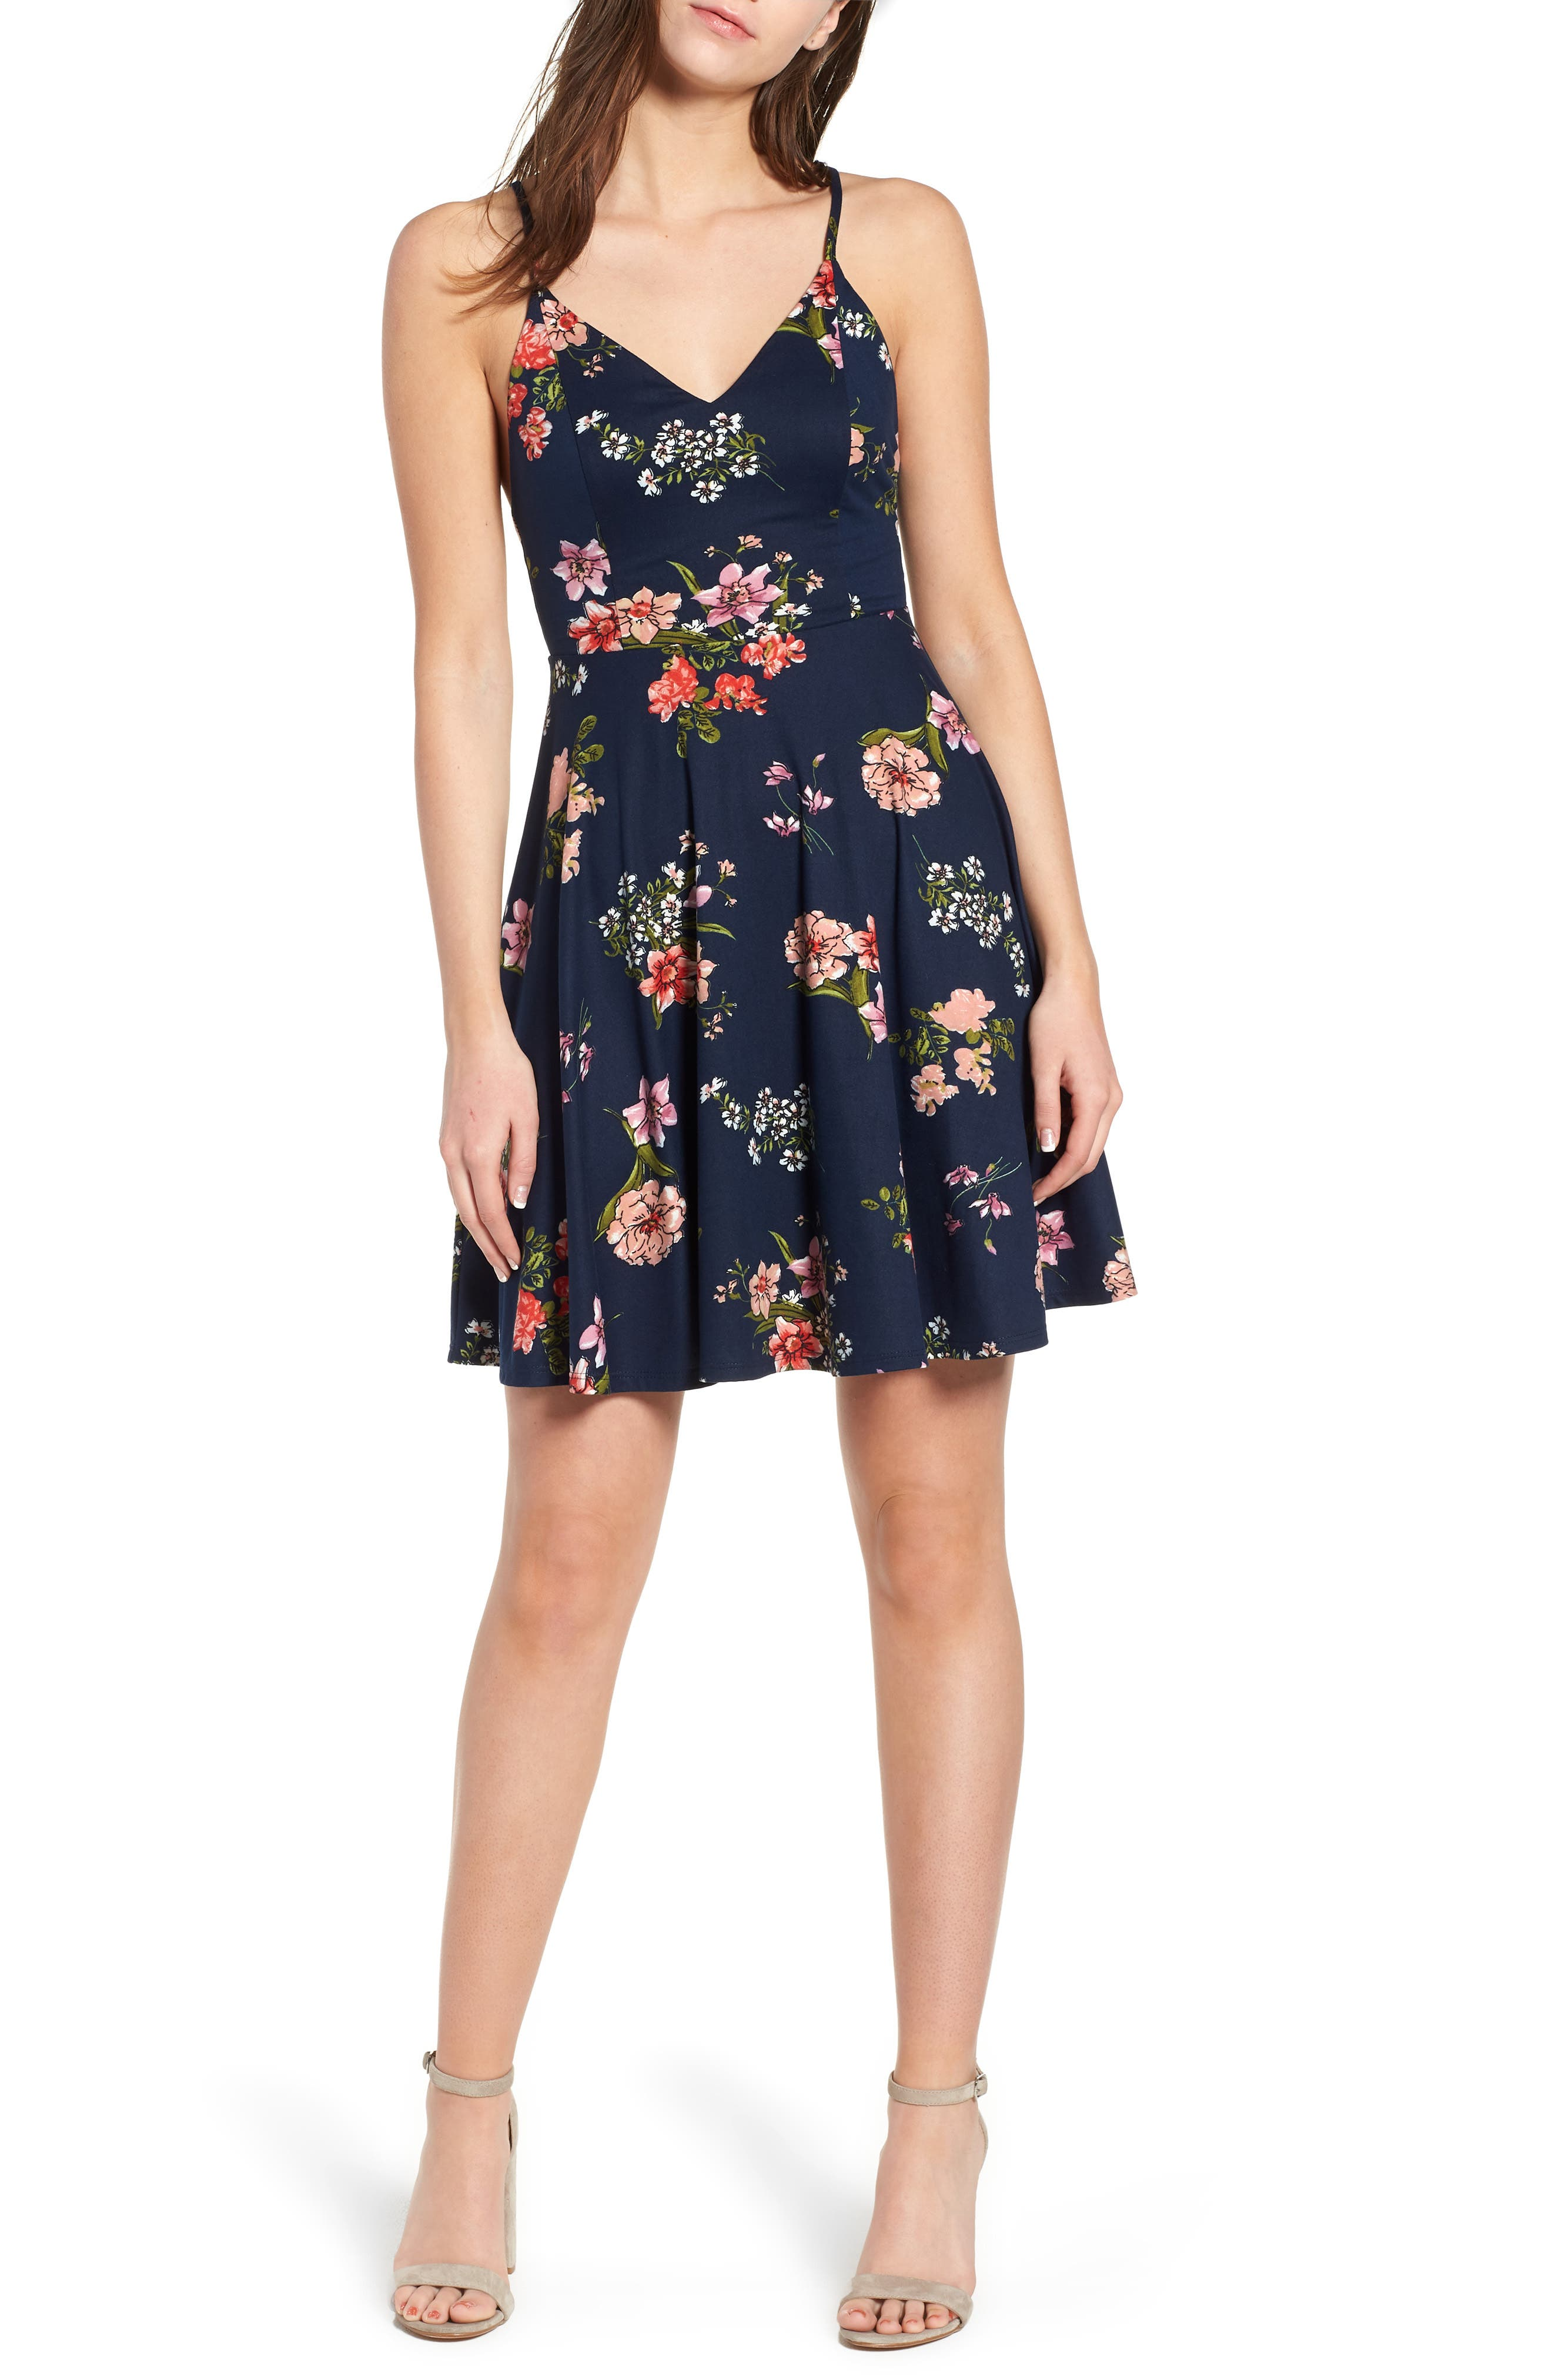 Soprano Floral Print Strappy Skater Dress